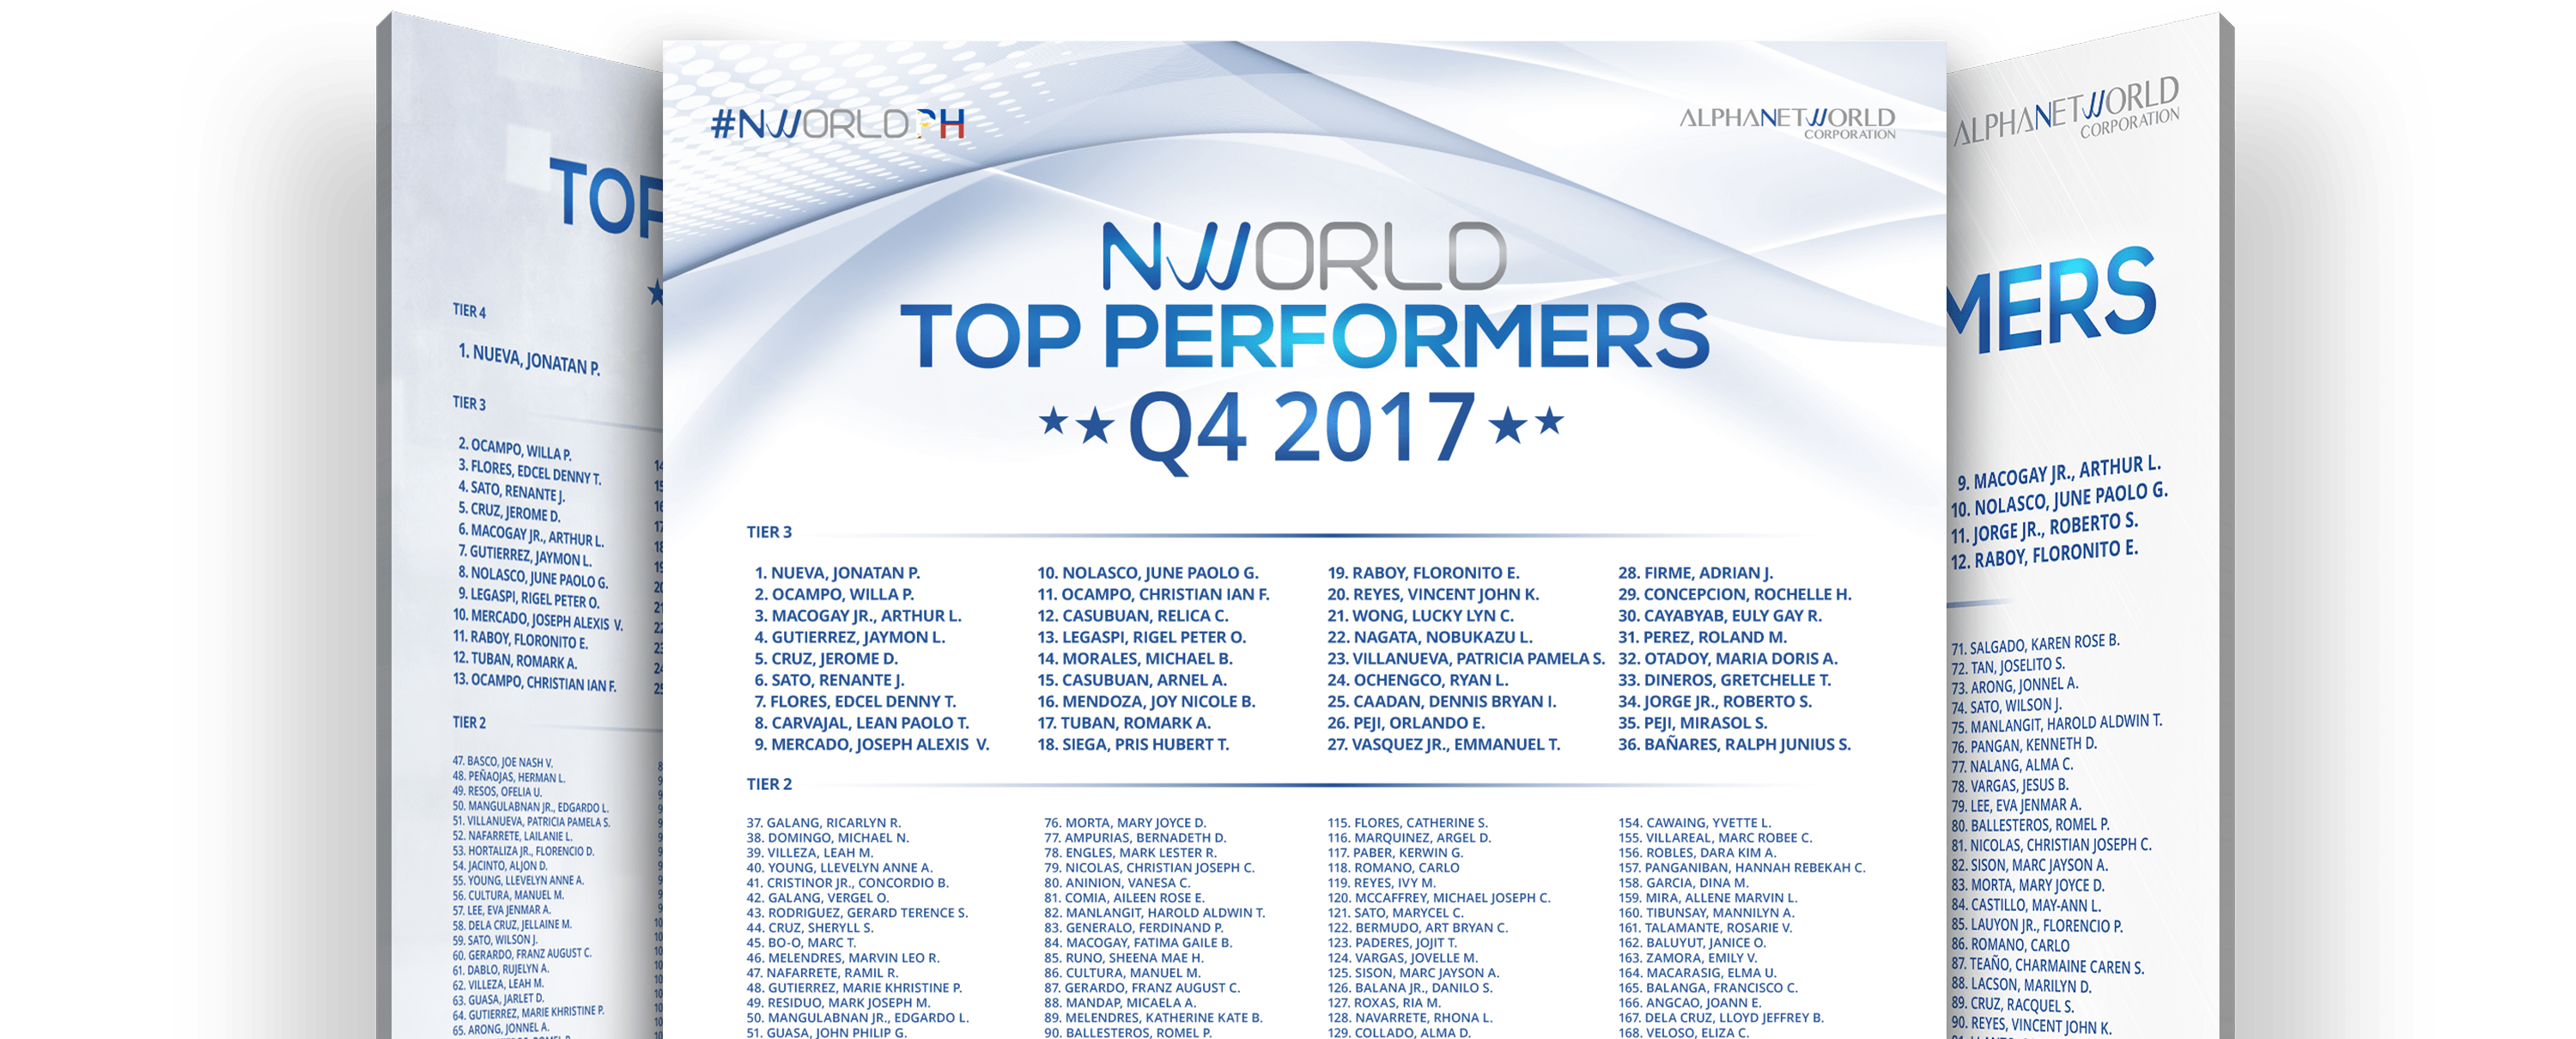 NWORLD: Fourth Quarter 2017 Top Performers